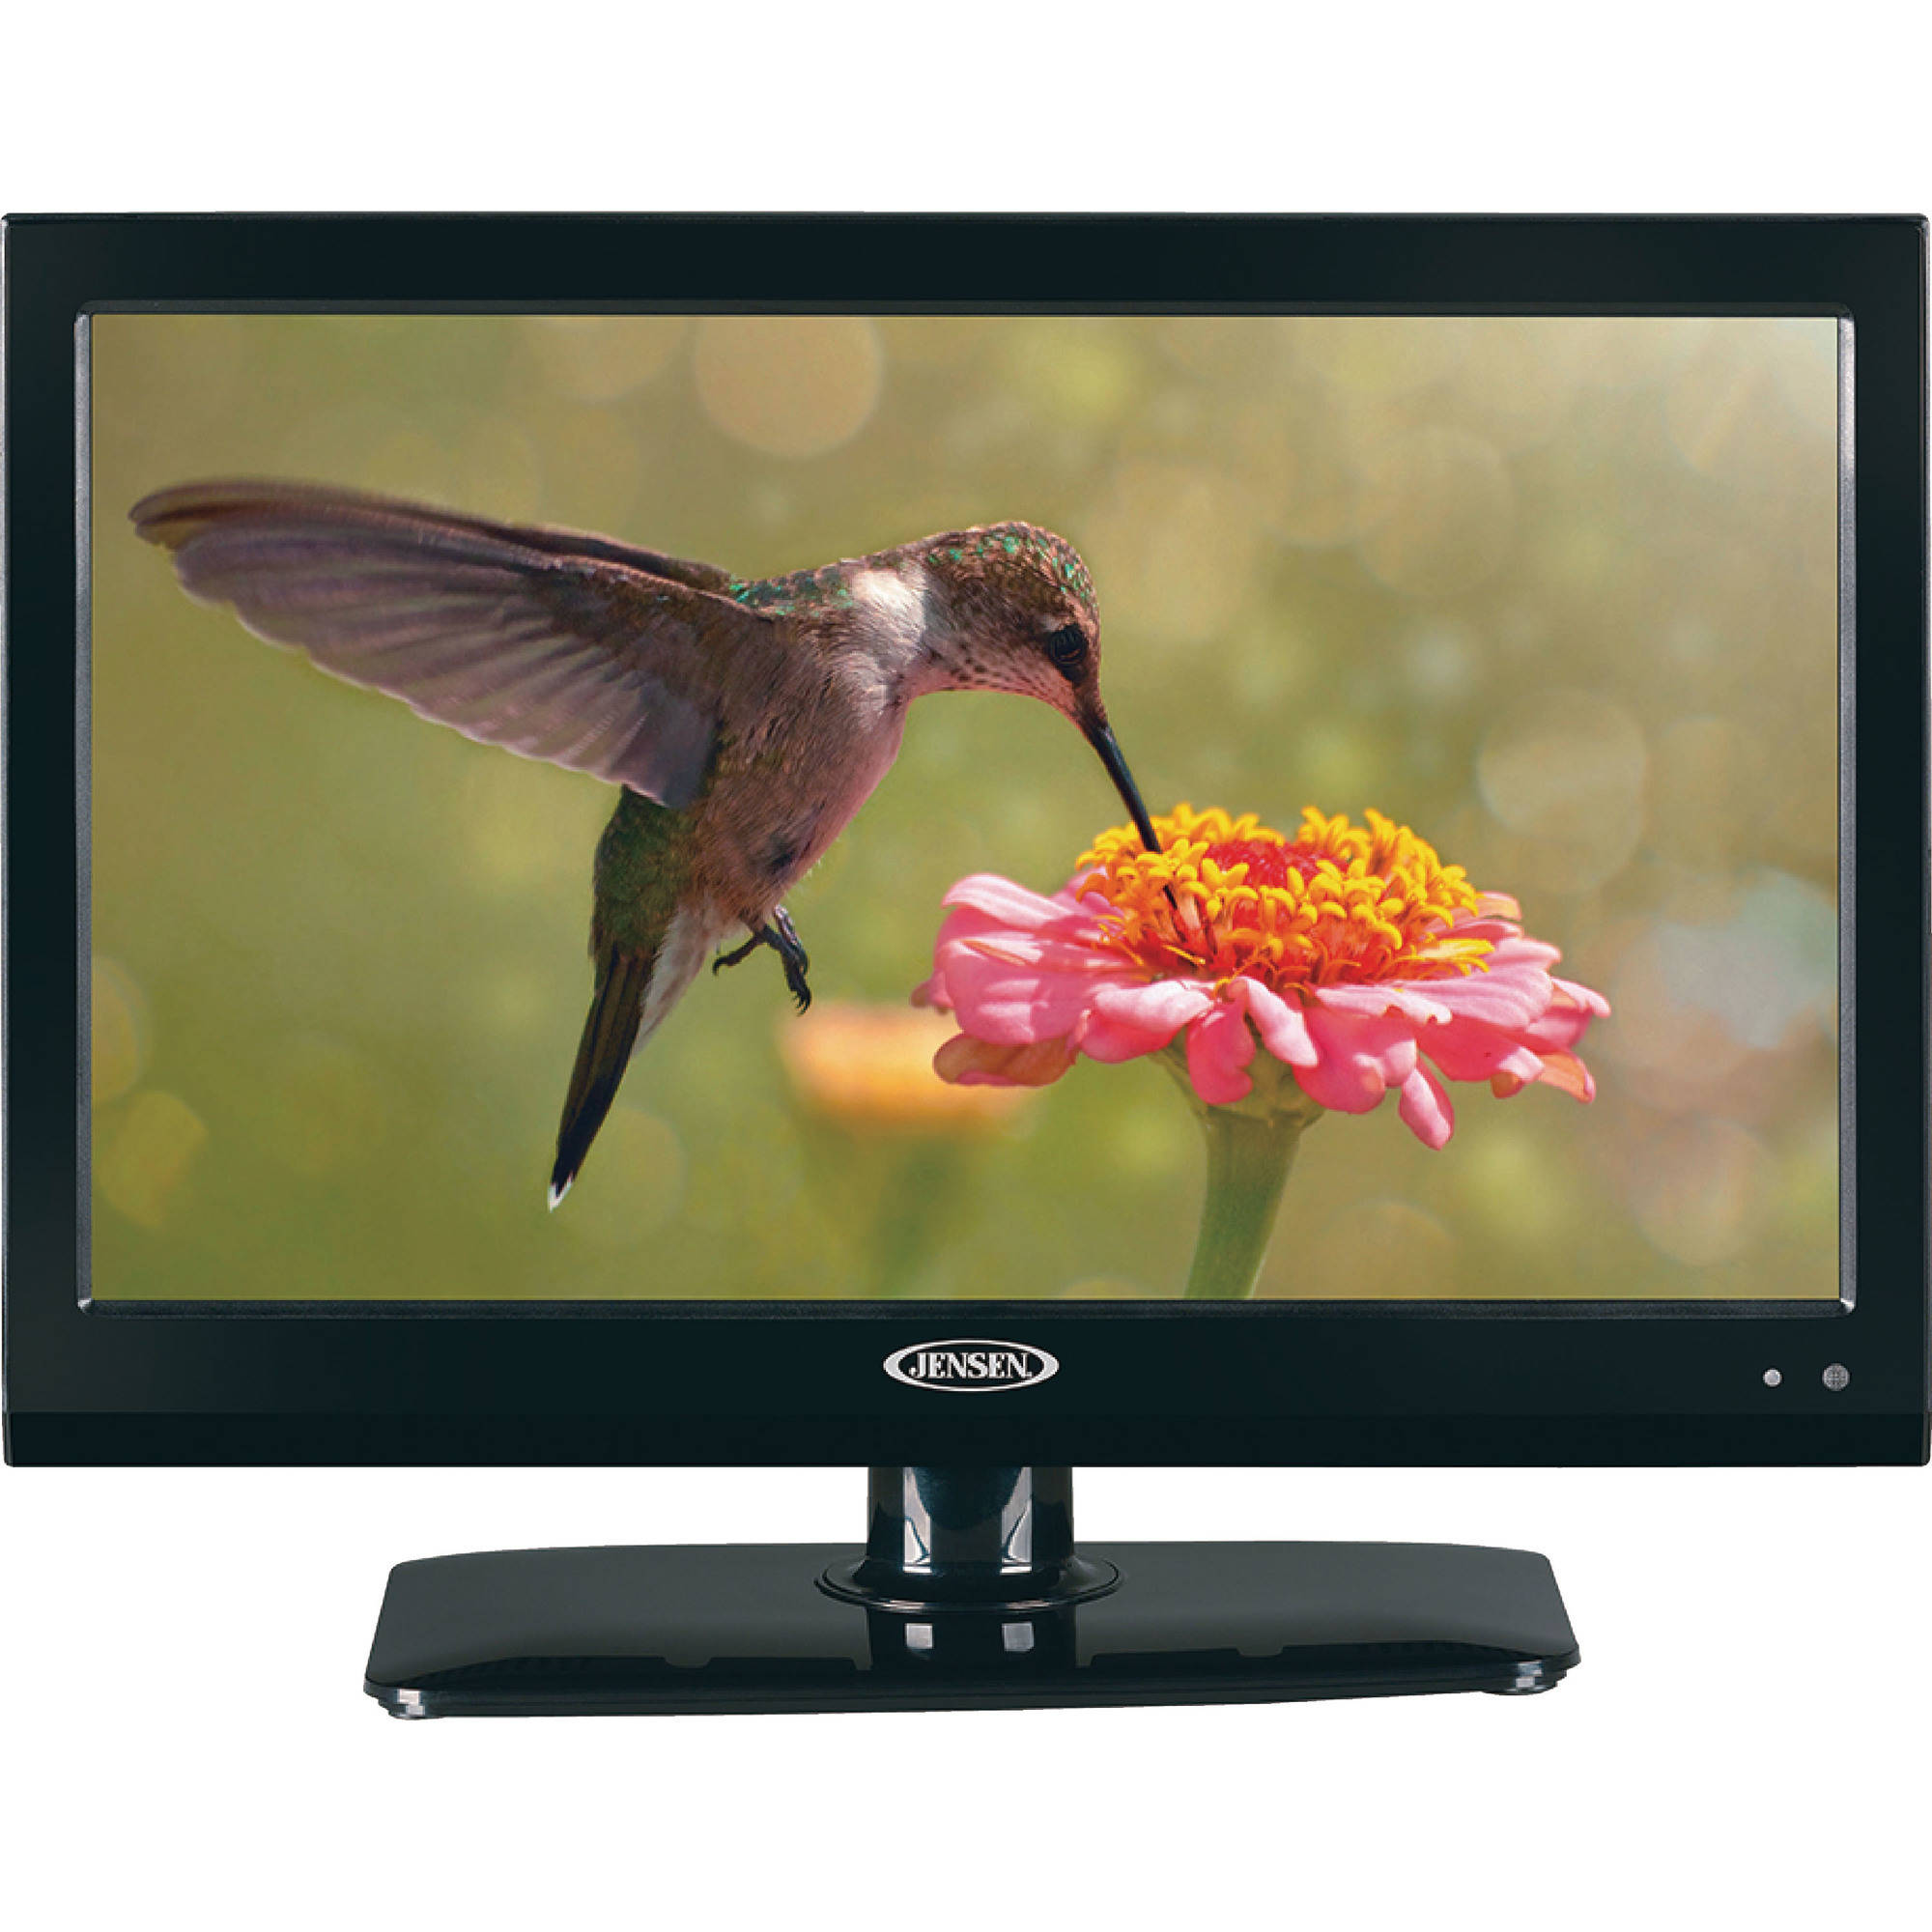 "Jensen JE1914DVDC 12VDC/110VAC 19"" LCD RV / Marine Television TV with DVD Player, Remote Control and Stand"